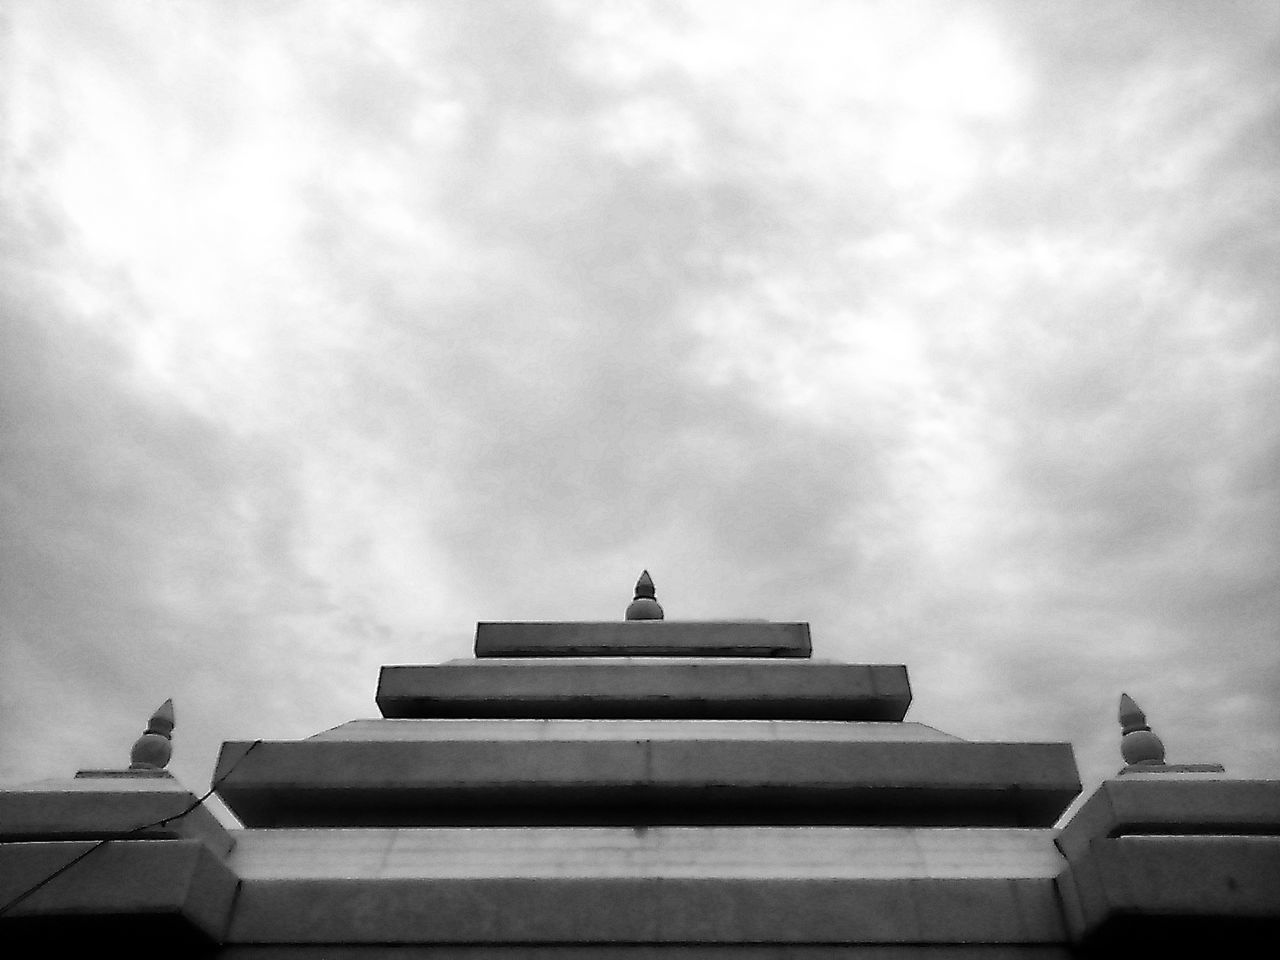 Cloud - Sky History Ancient Built Structure Outdoors Low Angle View Architecture Old-fashioned People Sky Day Building Exterior Mobilephotography Light Source Gate Temple Temple Gate Religion And Beliefs Tradition Culture Religious Architecture Temple - Building Arts Culture And Entertainment EyEmNewHere EyeEm Best Shots EyeEm Gallery EyeEm Best Edits Beauty In Nature The Architect - 2017 EyeEm Awards